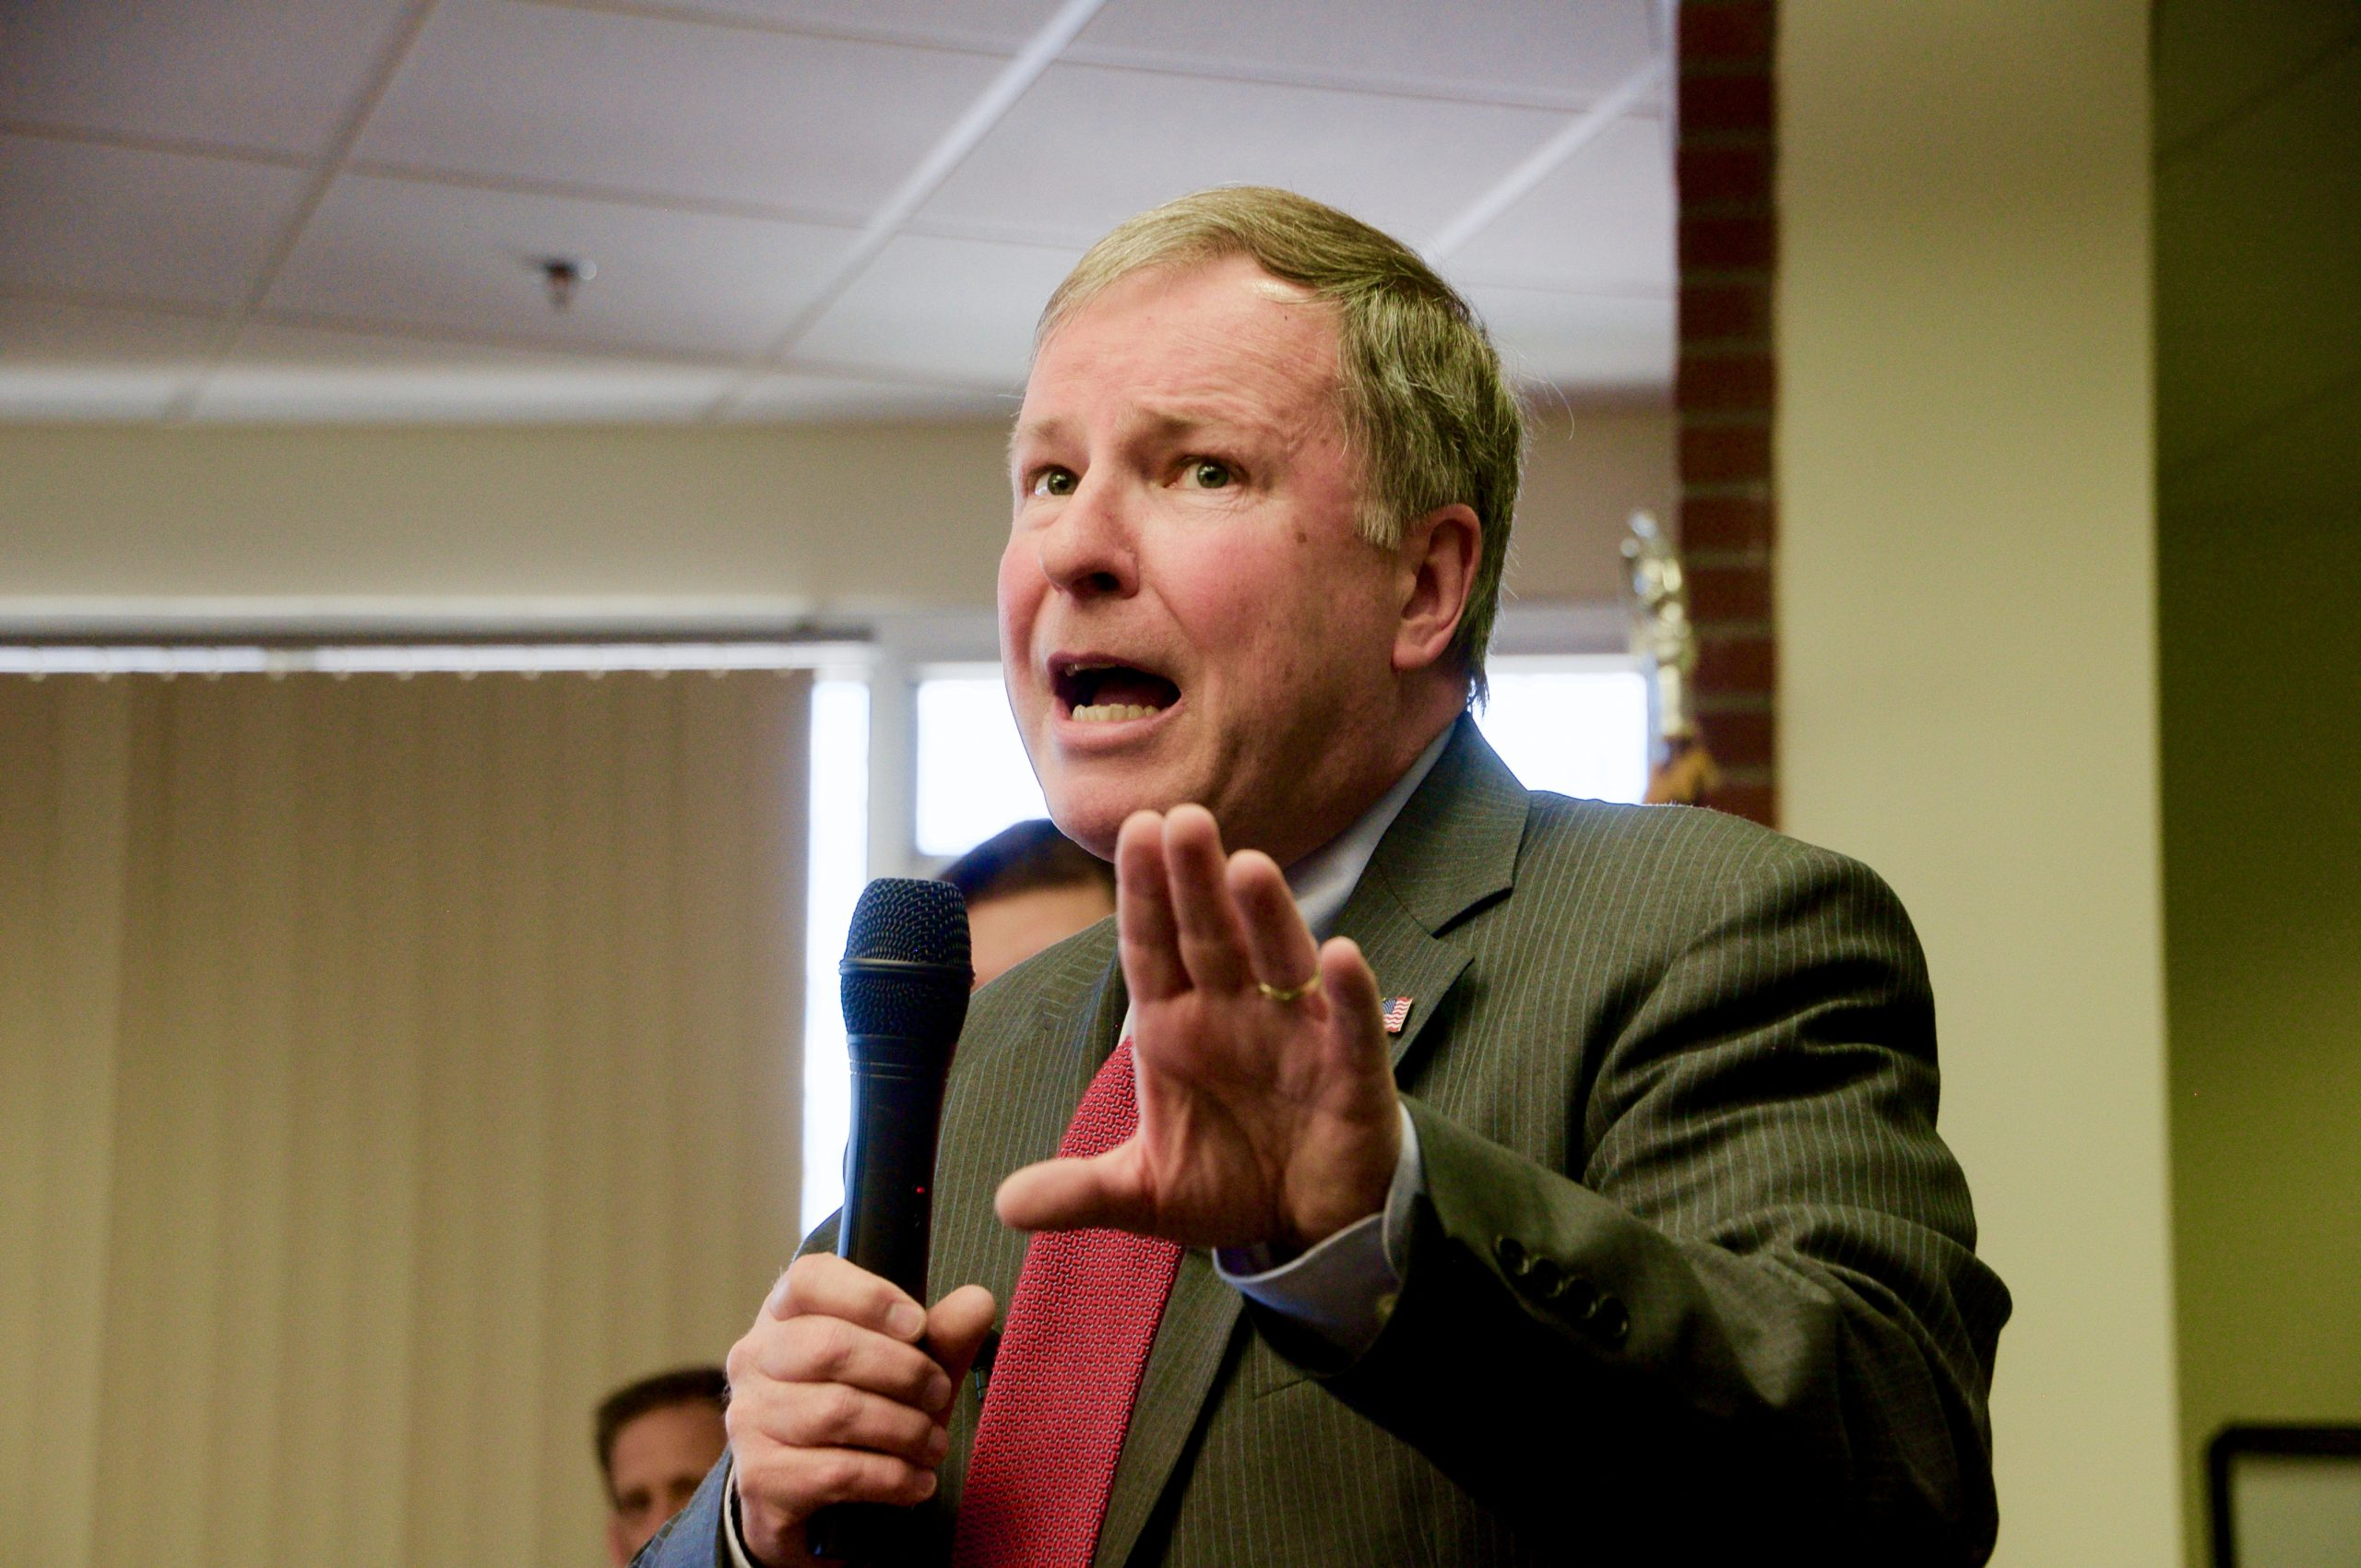 Congressman Doug Lamborn speaking to constituents at a town hall forum in Colorado Springs.